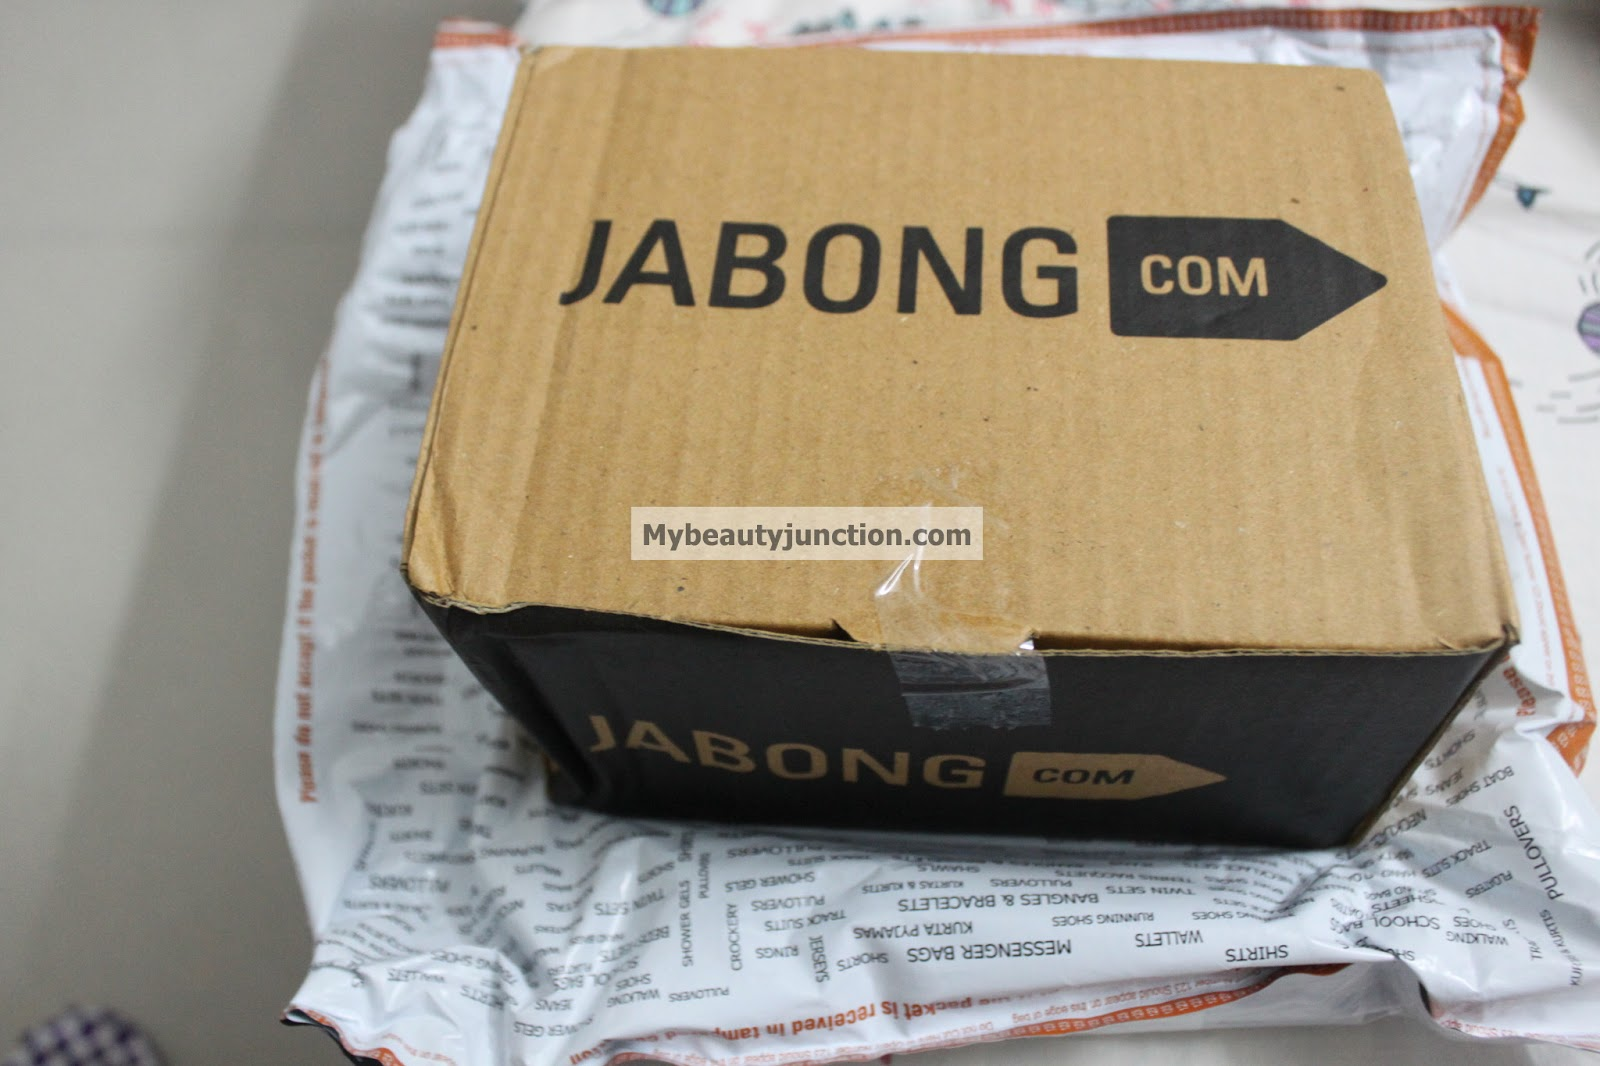 Review of my shopping for makeup and beauty at Jabong.com